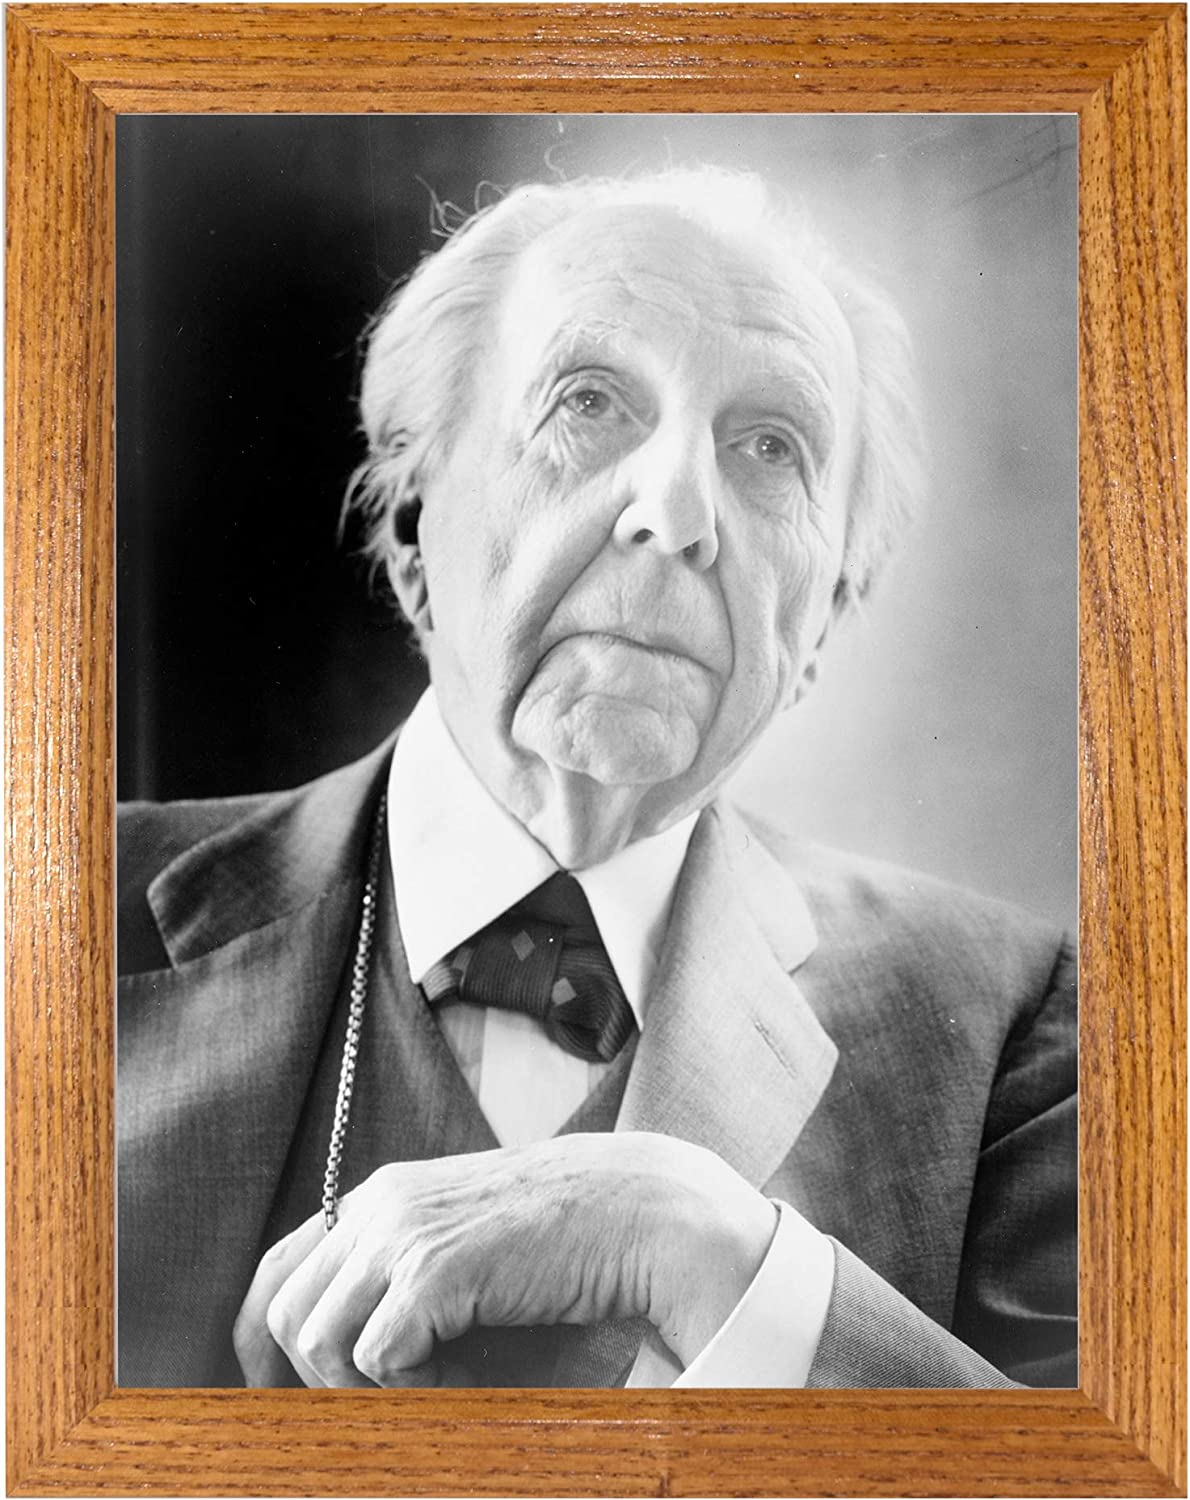 Frank Lloyd Wright Photograph in a Historica Honey Frame Brown Challenge the lowest price of Japan 2021 model -